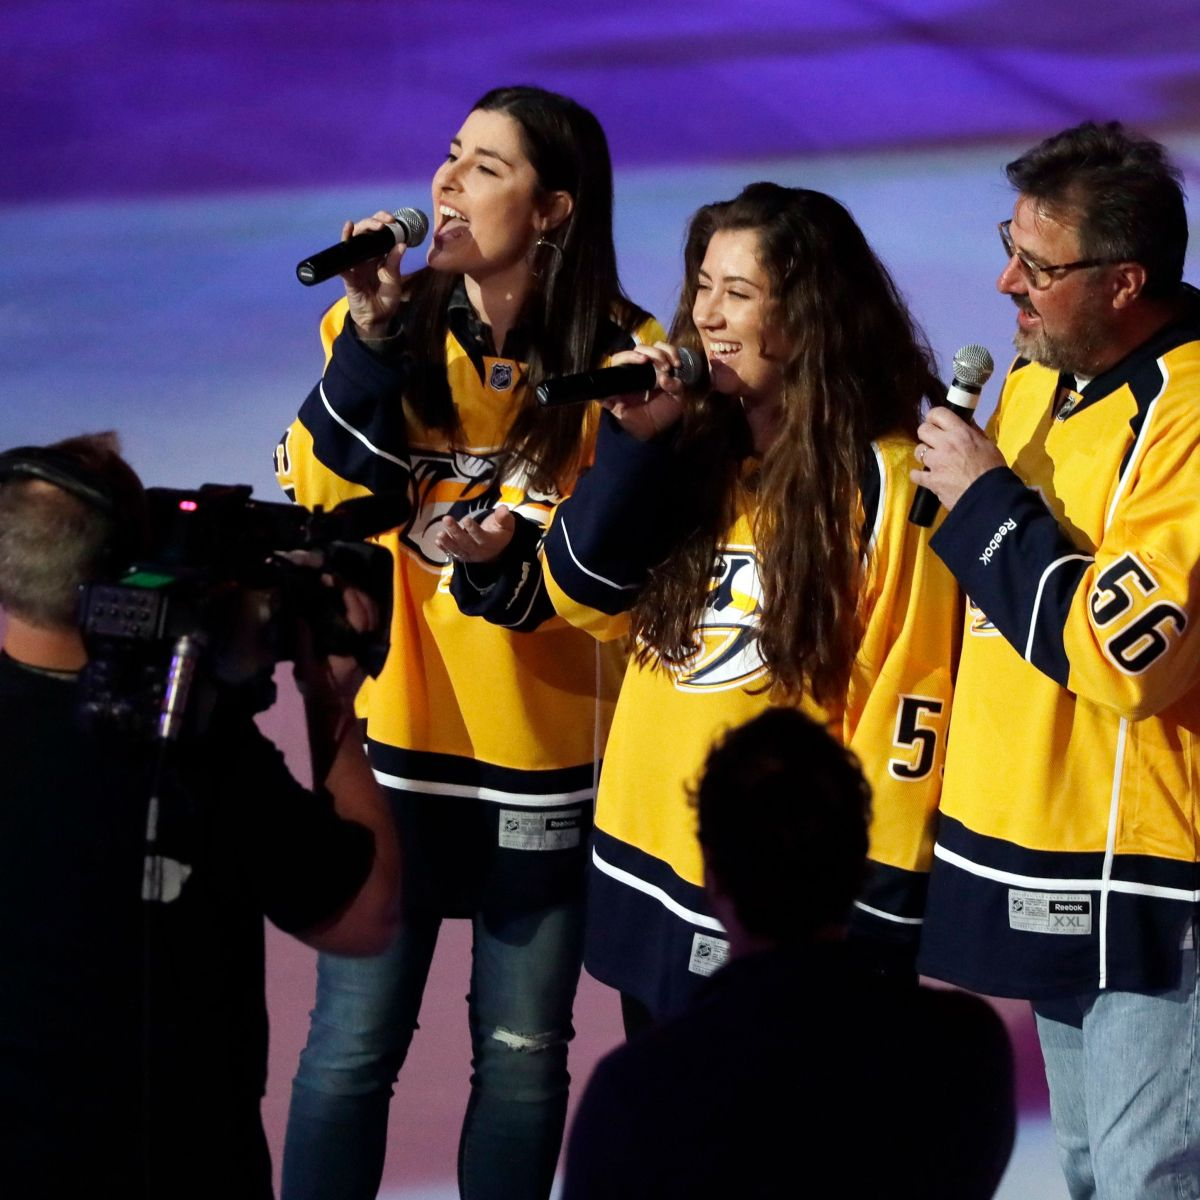 She Loves Her Kids With 'Every Heartbeat' — Amy Grant's Children With Vince Gill and Gary Chapman